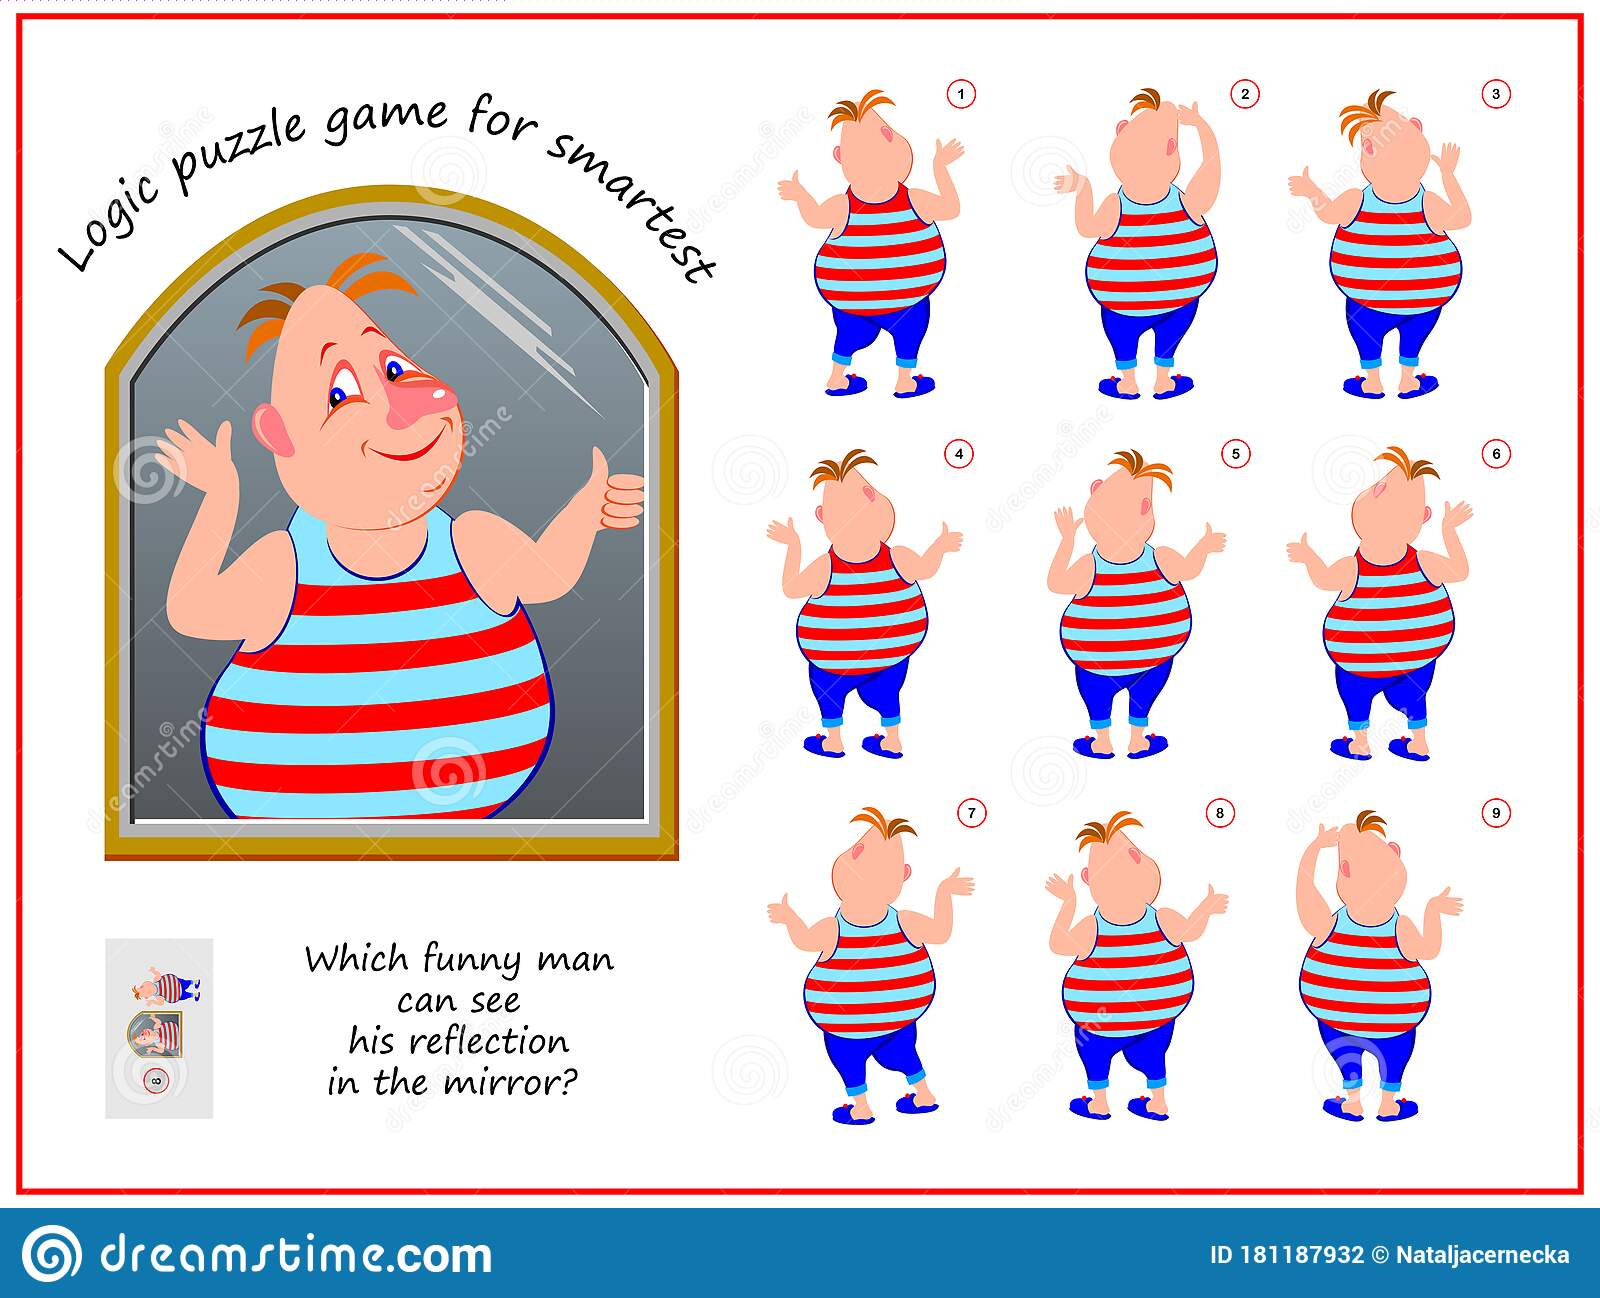 Logic Puzzle Game For Children And Adults Which Funny Man